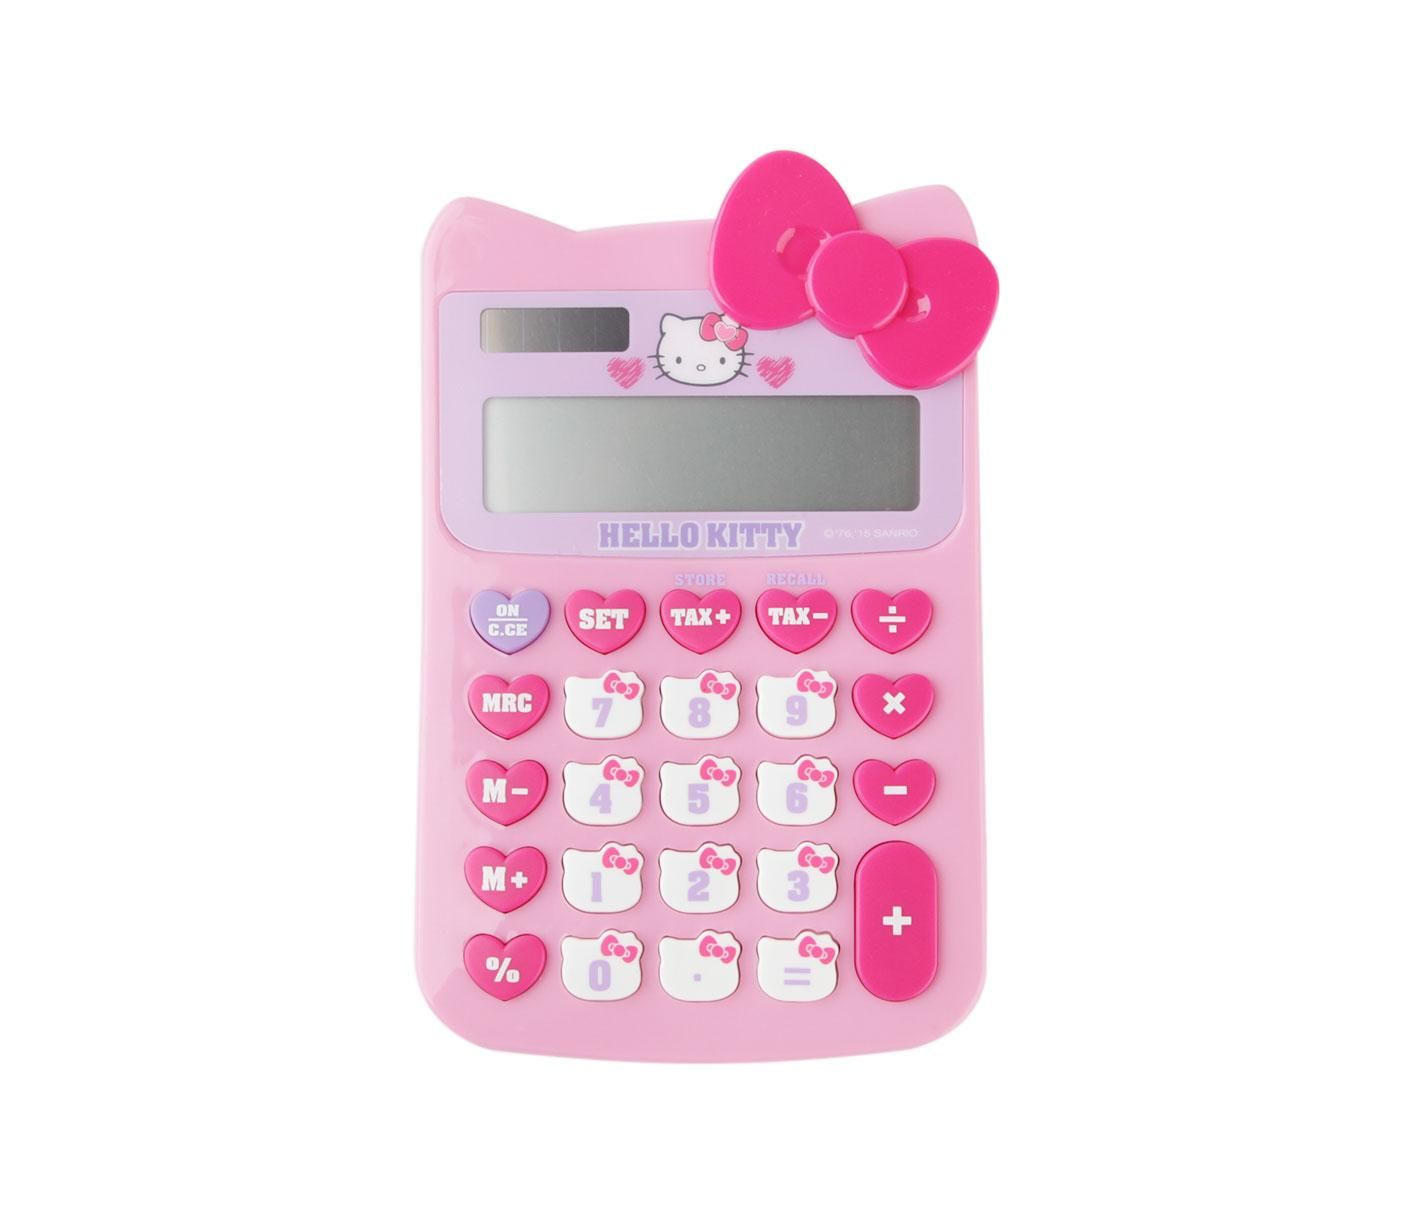 Hello Kitty Calculator #HelloKitty #HelloKittyOffice #Calculator